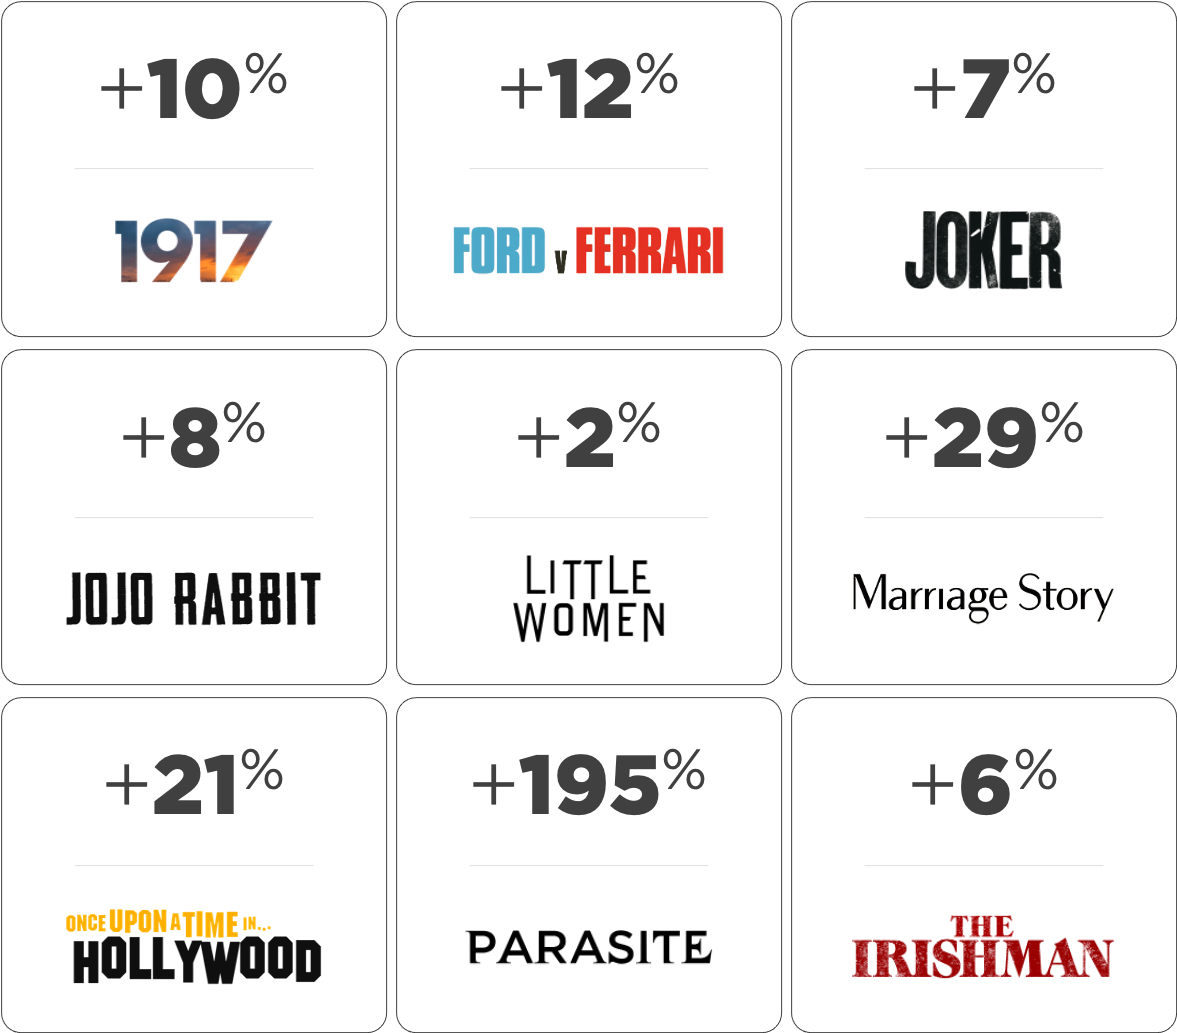 Marriage Story +29% Once Upon a Time in Hollywood +21% Parasite +195% The Irishman +6%, 1917 +10% Ford v Ferrari +12% Joker +7% Jojo Rabbit +8% Little Women +2%